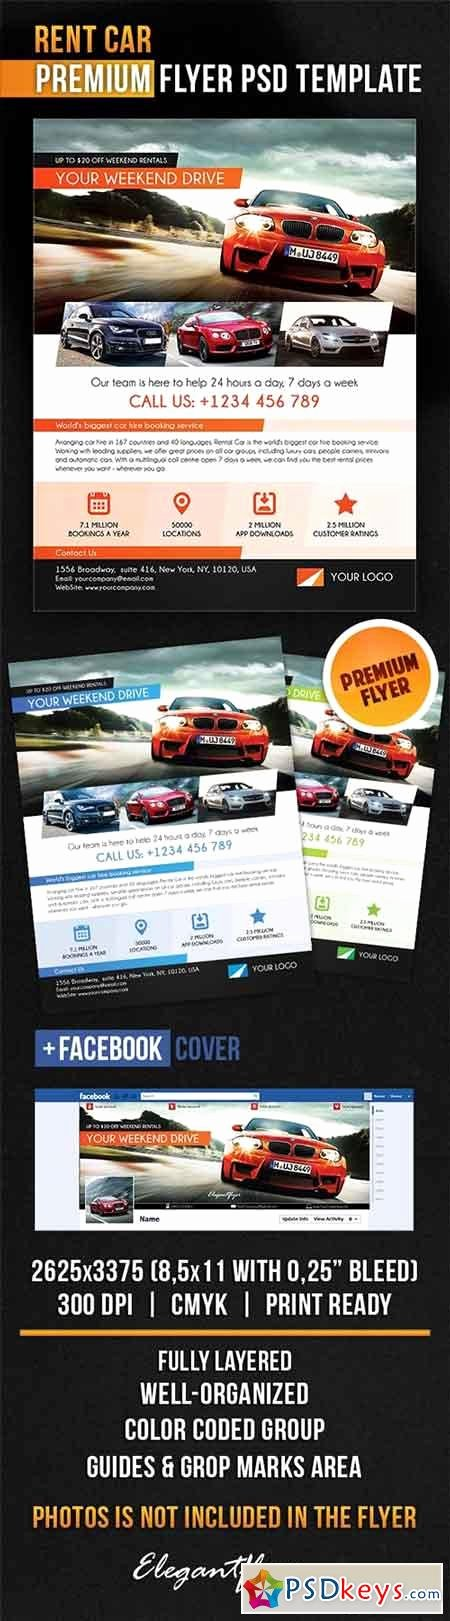 Facebook Cover Template Psd New Rent Car Flyer Psd Template Cover Free